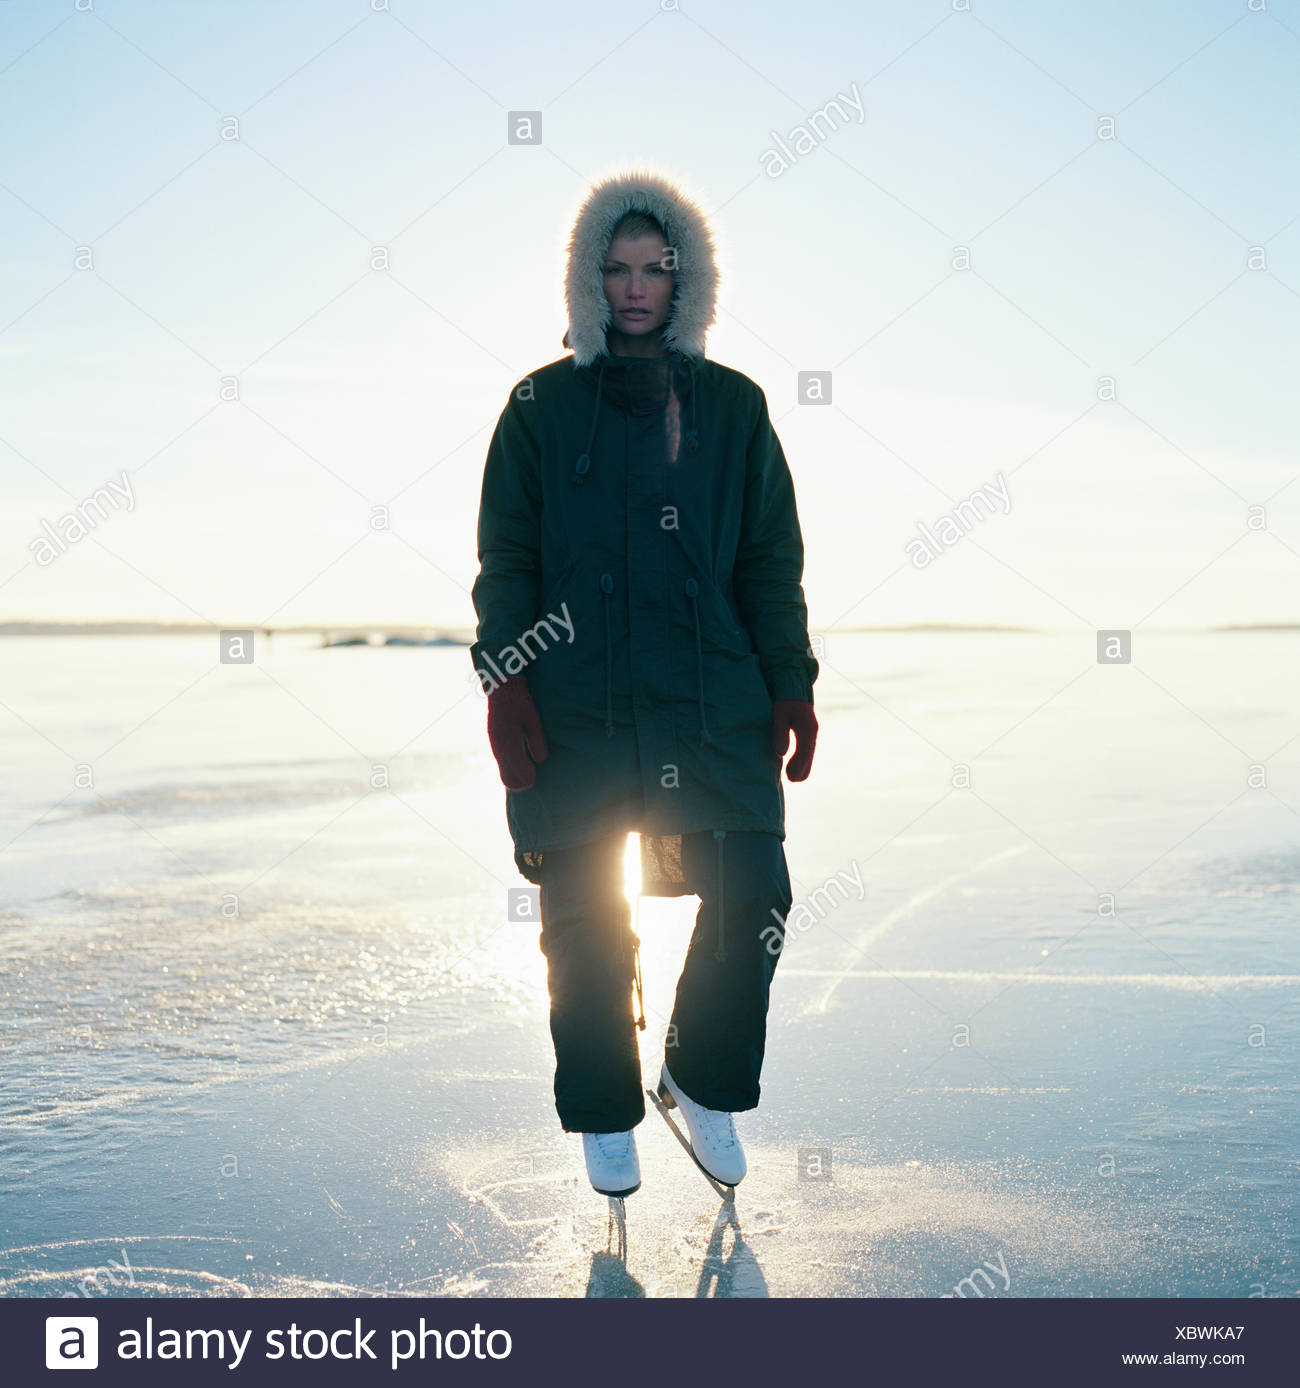 Sweden, Uppland, Varmdo, Bjorno, Mid adult woman in ice skates standing on frozen lake - Stock Image